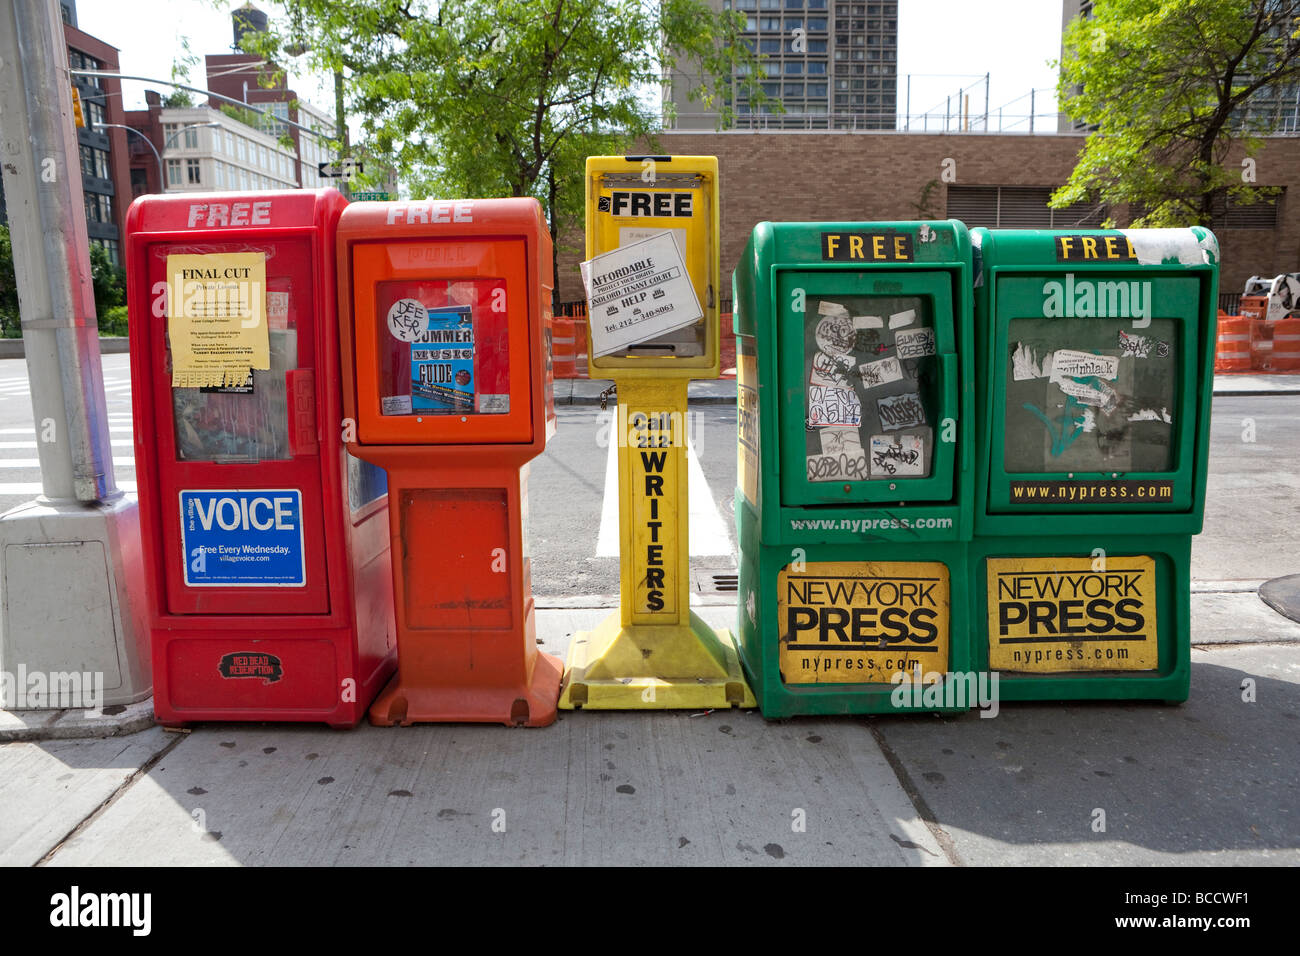 Free newspaper stands in NYC - Stock Image